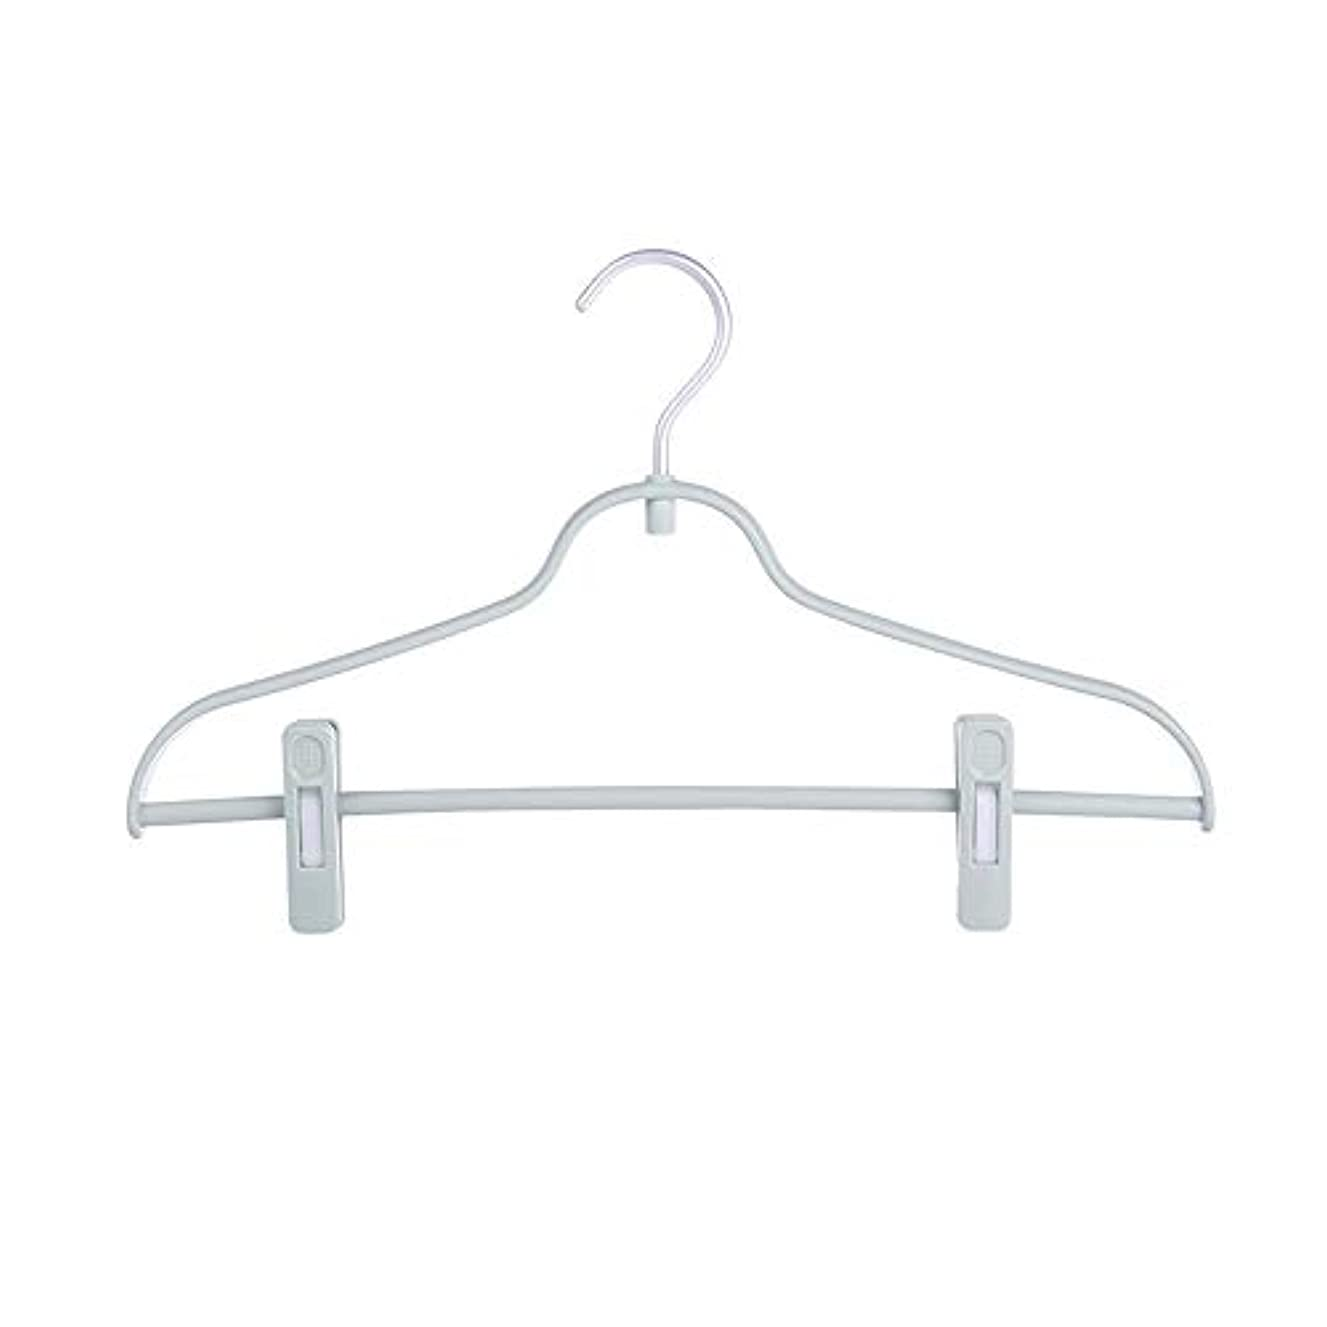 Hangers Pack of 12 Adult's Pants Hangers with Clips Jeans Skirt Underwear Hanger Clip Hanger Multifunctional Hanger Non-Slip Suit Hangers (Color : Green, Size : 4024CM)